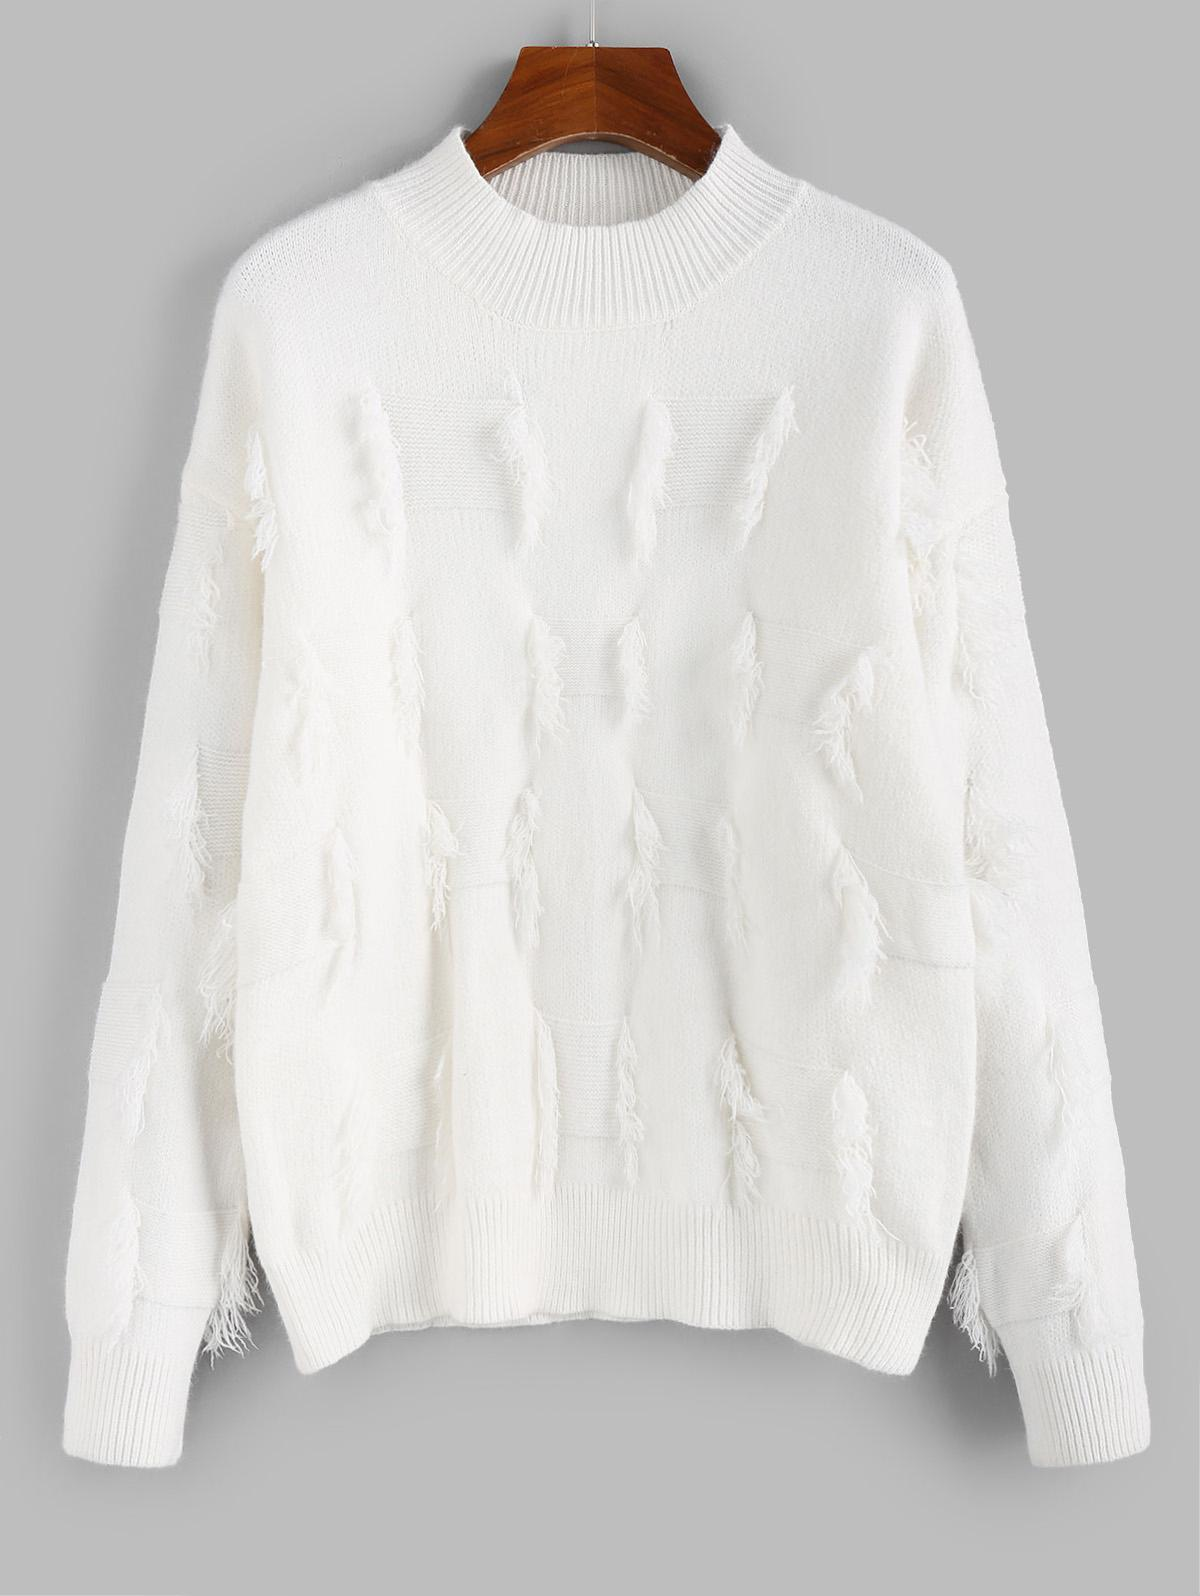 ZAFUL Frayed Detail Mock Neck Drop Shoulder Sweater